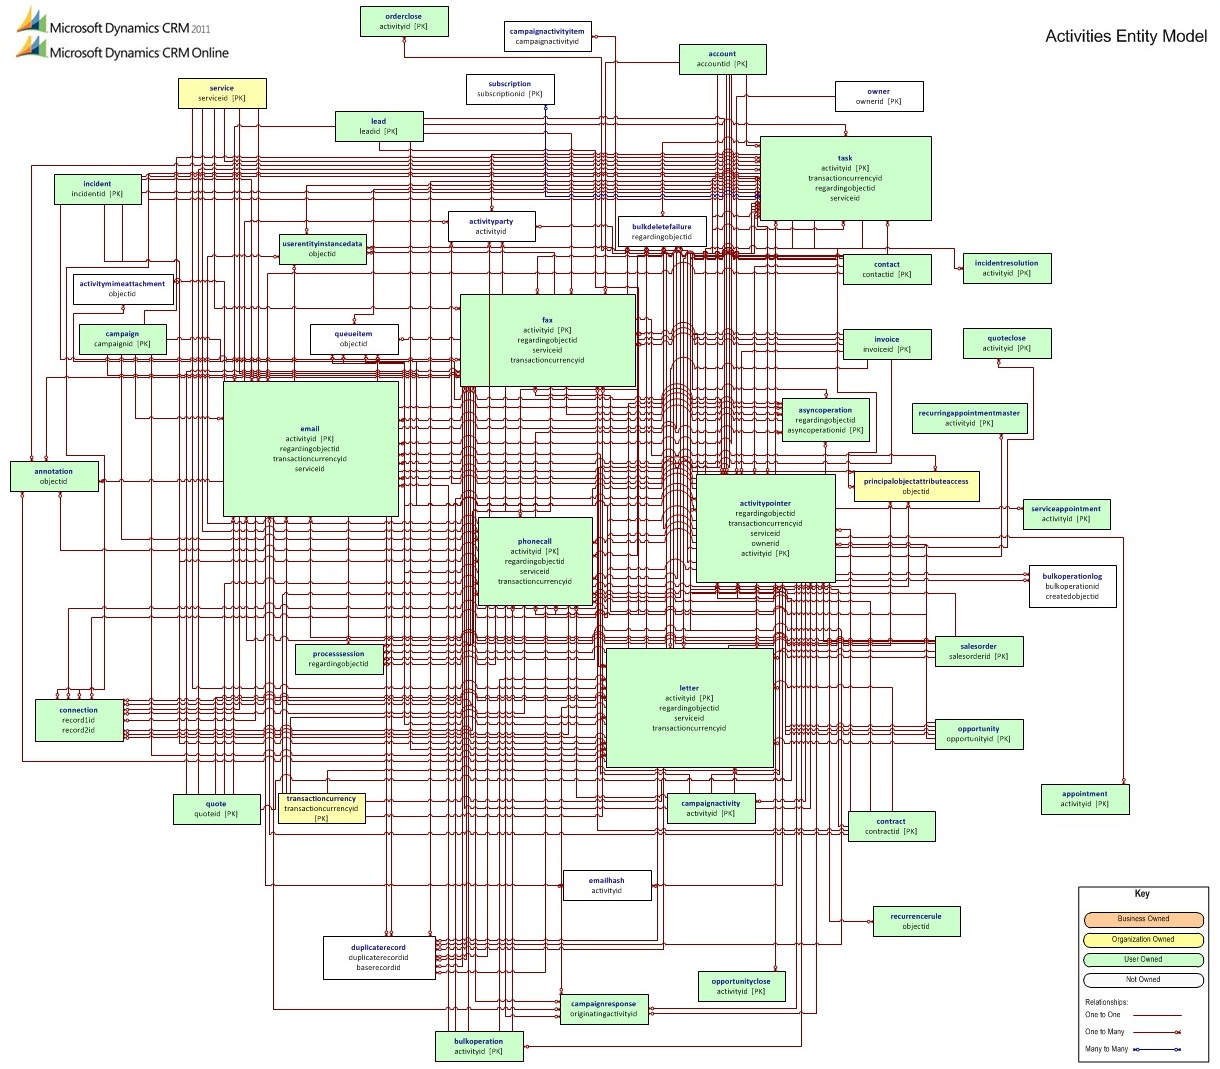 Data Model Entity Relationship Diagram Building Electrical Installation Wiring Activity Microsoft Dynamics Crm 2011 And